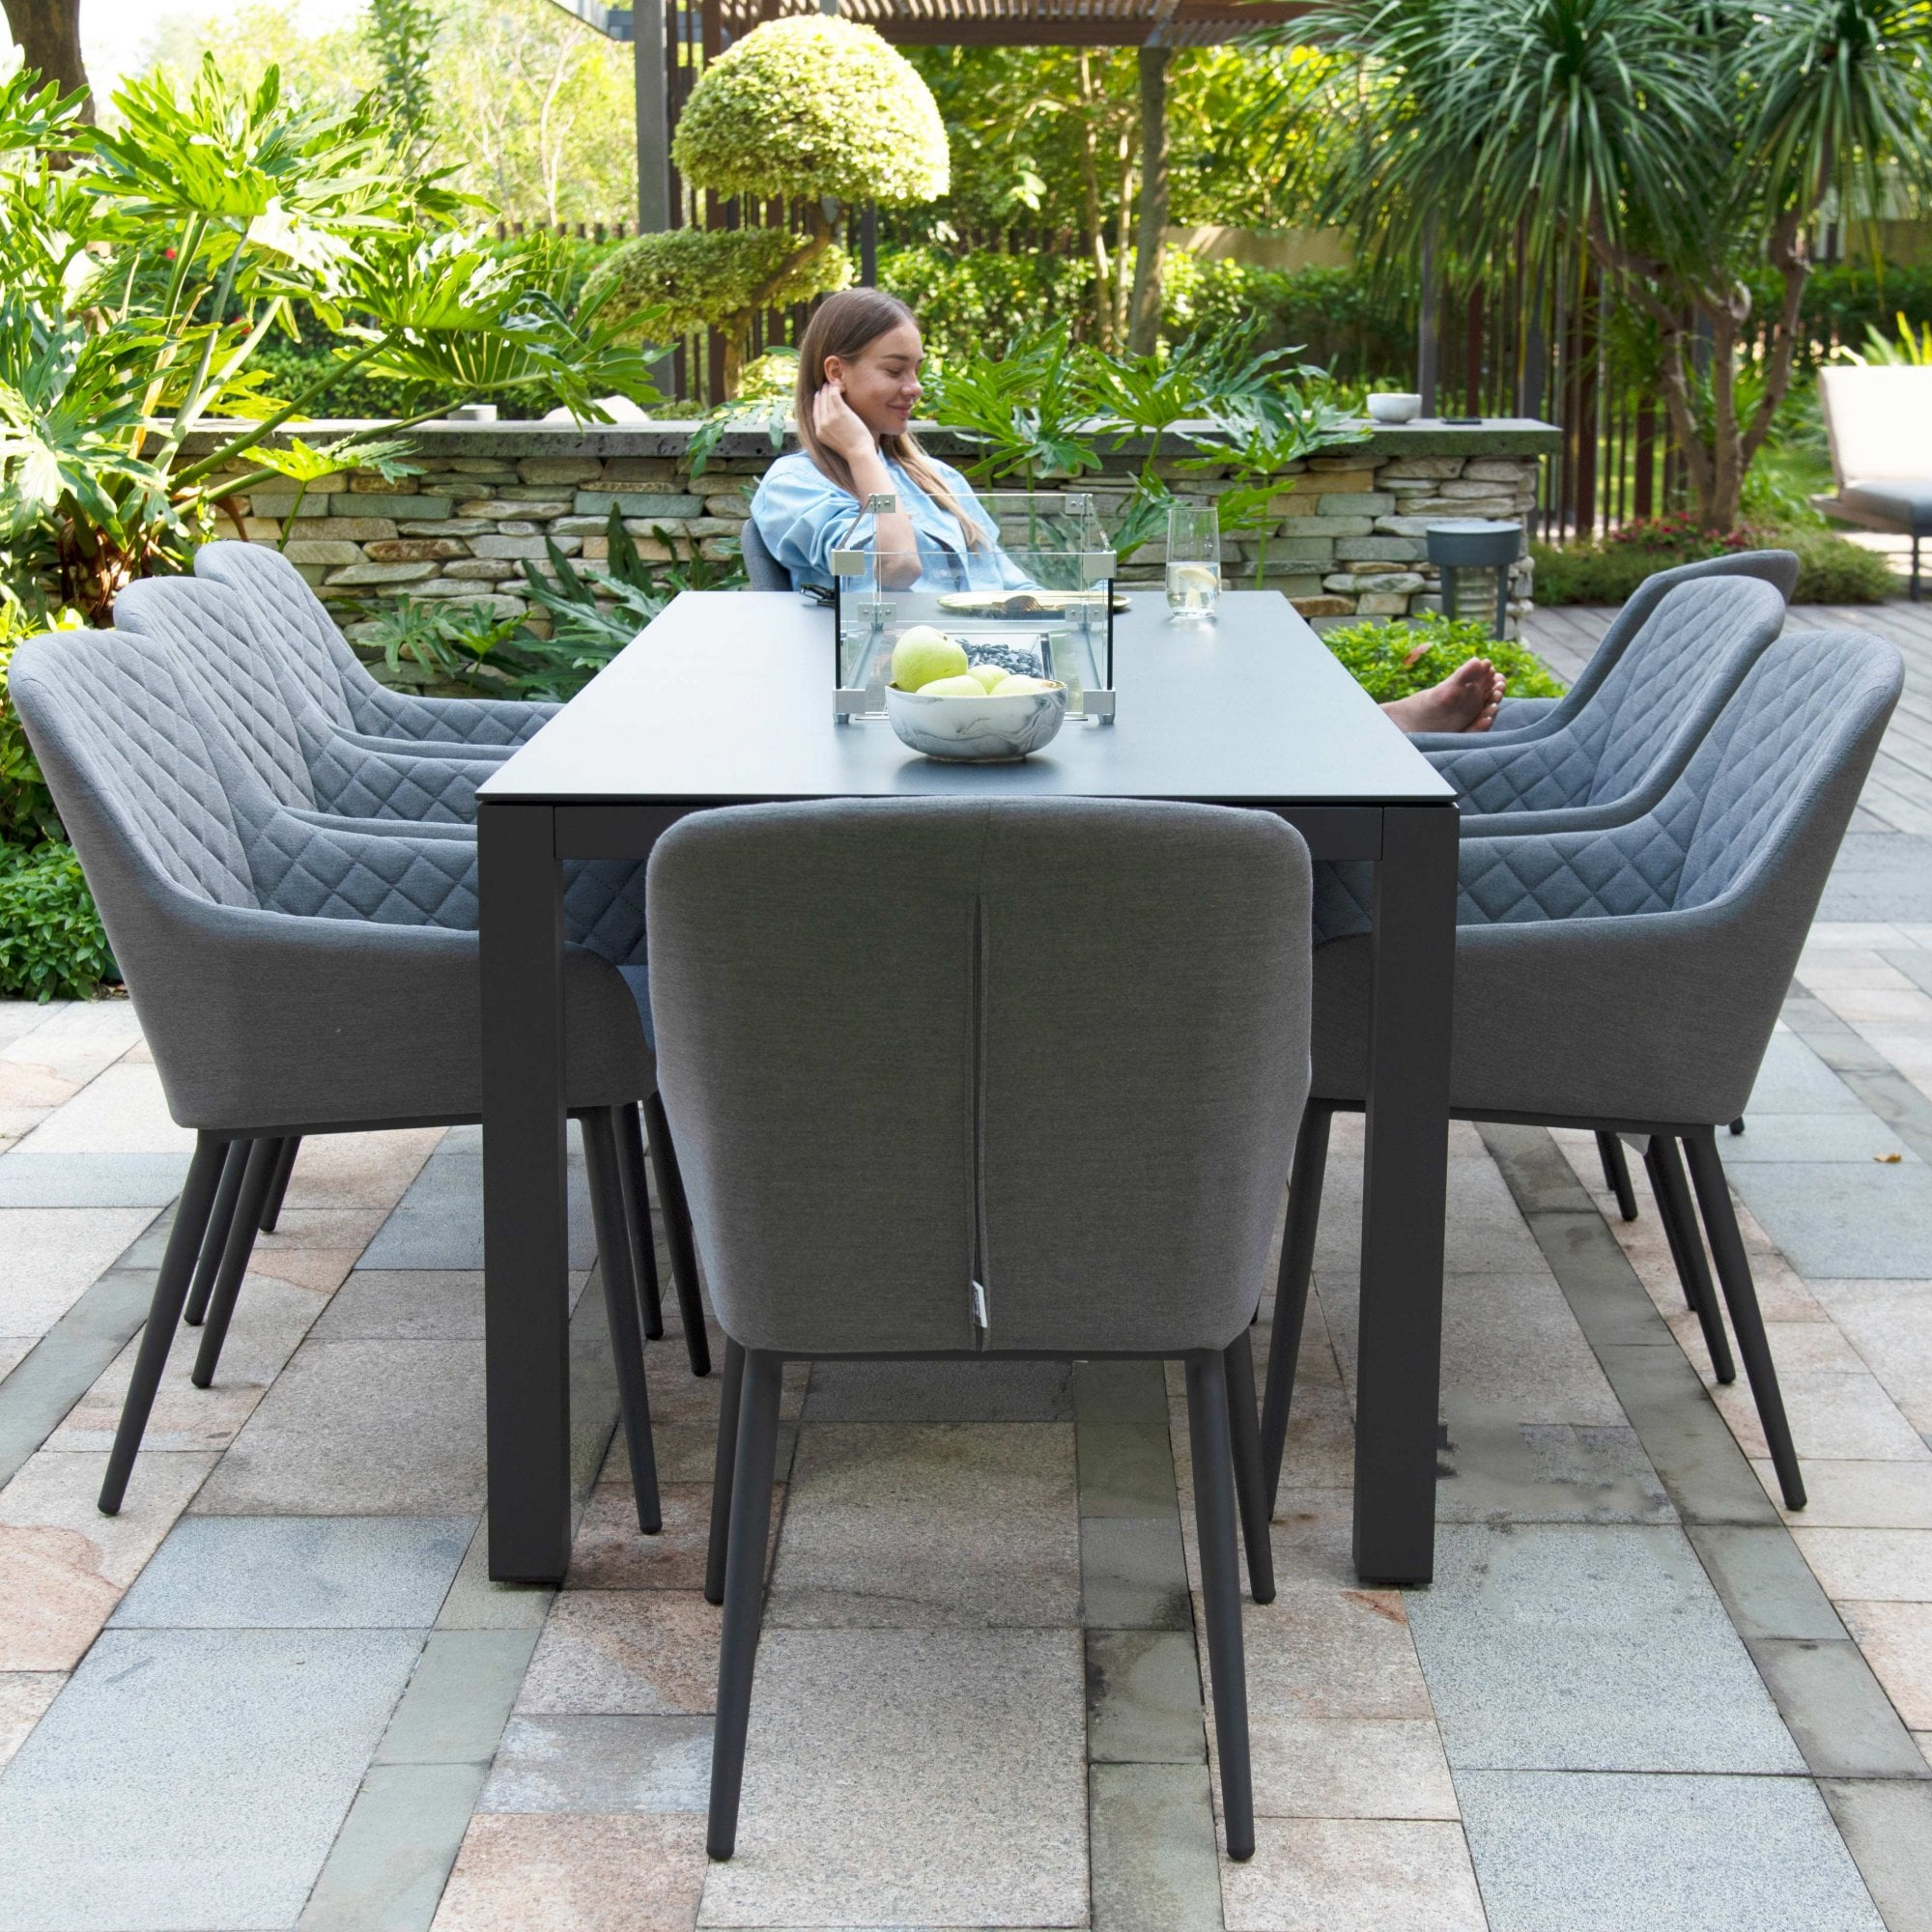 outdoor fabric zest 8 seat rectangular dining set with fire pit table flanelle